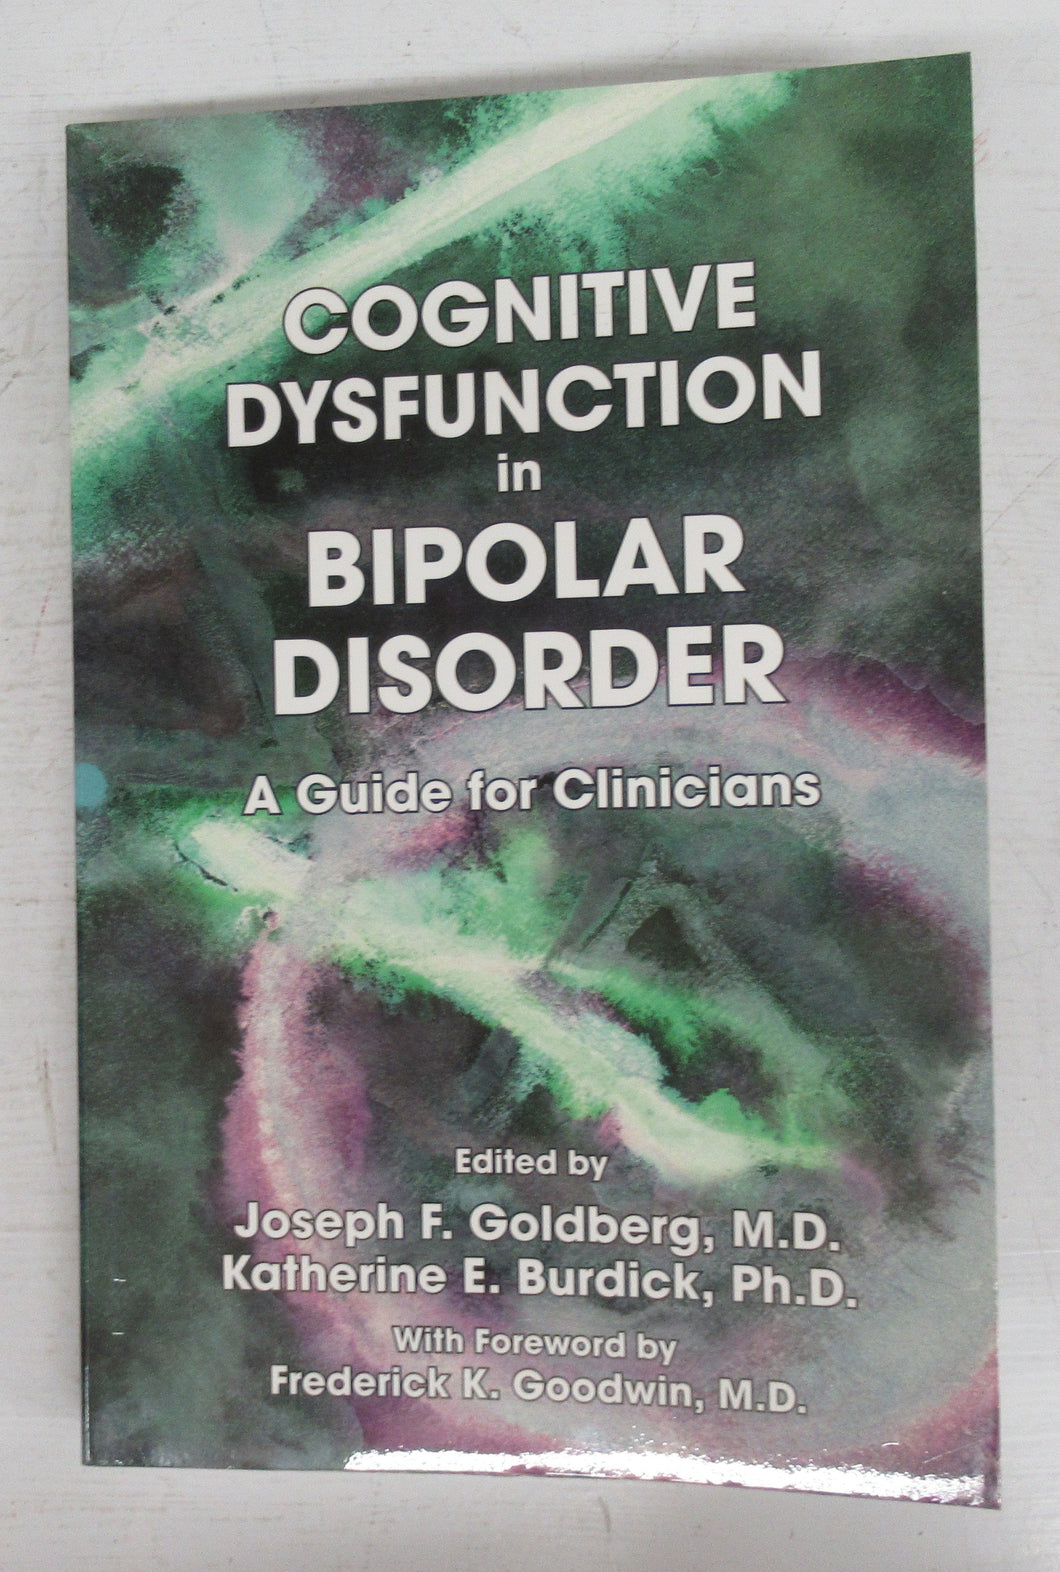 Cognitive Dysfunction in Bipolar Disorder: A Guide for Clinicians